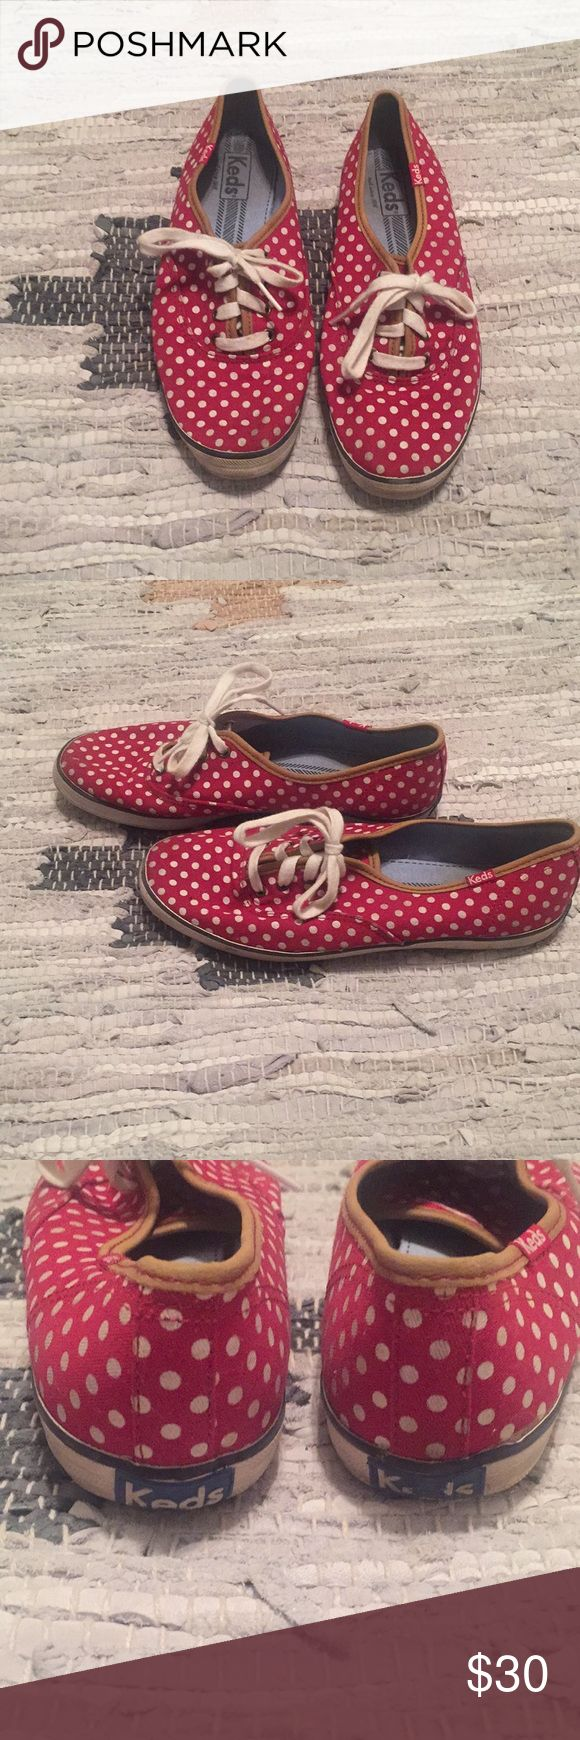 SALE! 💕Red, Polka Dot Keds💕 Red, polka dot meds with tan, leather accents. Good condition. Worn a few times but haven't worn in years so selling. A slight bit of wear on toe and on back Keds symbols. Keds Shoes Sneakers